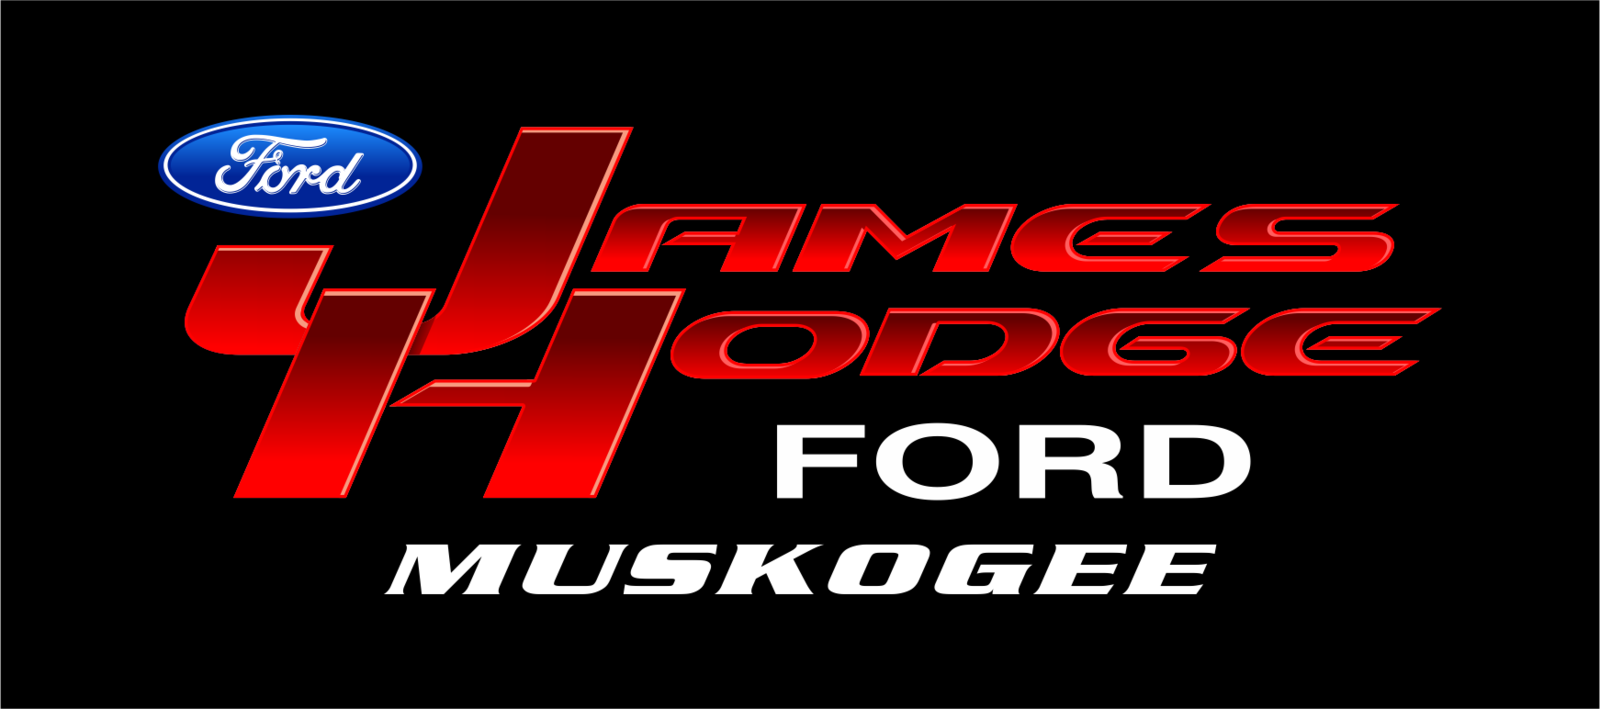 Honda Dealership Tulsa >> James Hodge Ford - Muskogee, OK: Read Consumer reviews ...